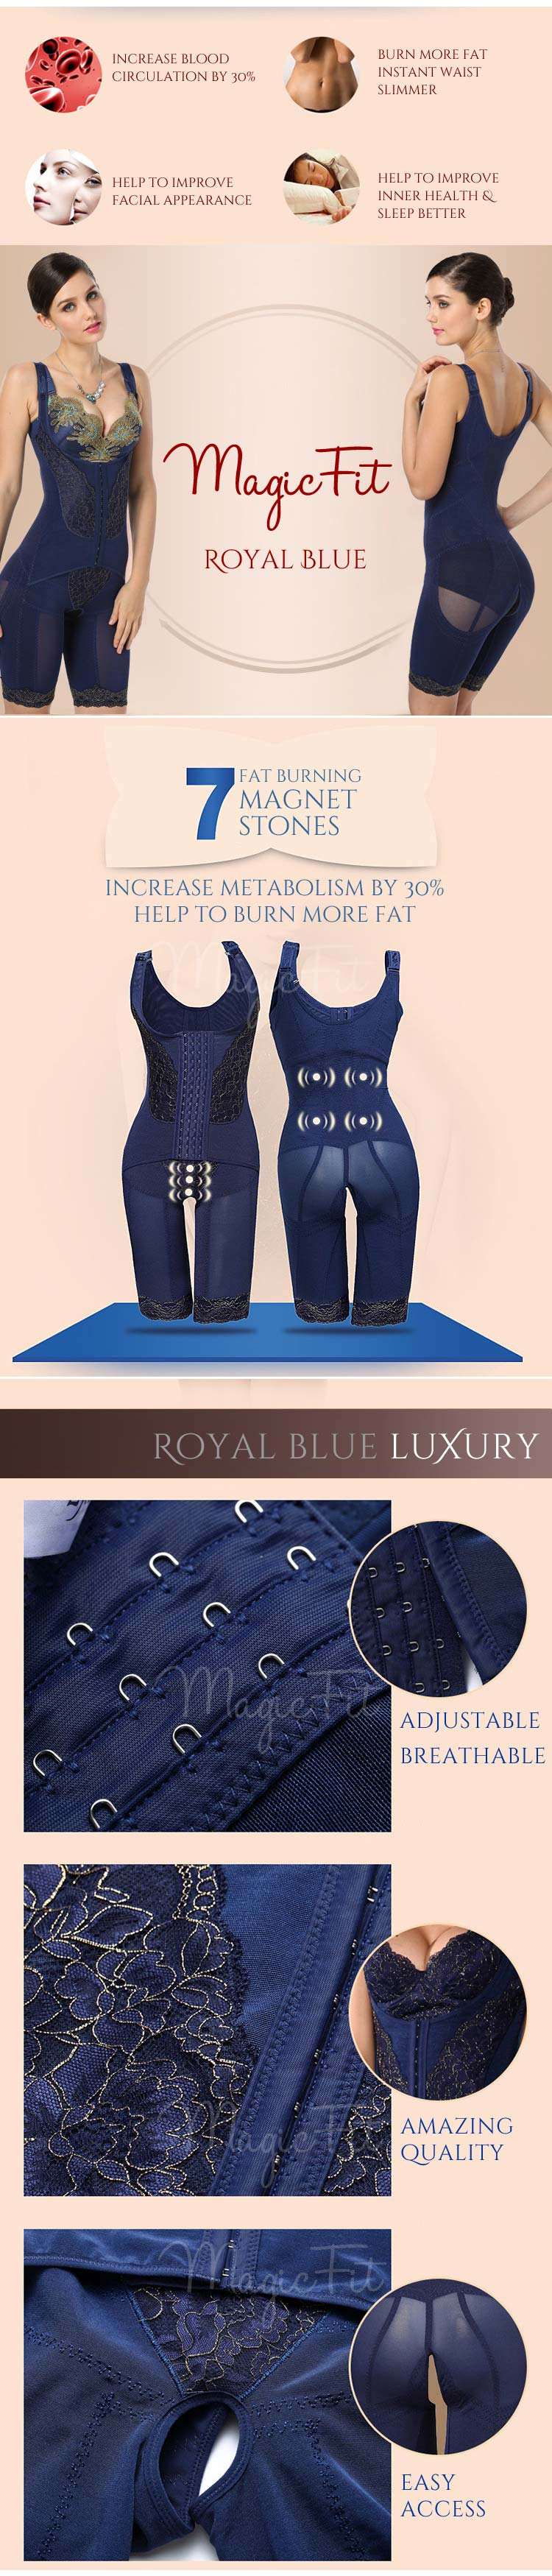 royal blue bodysuit